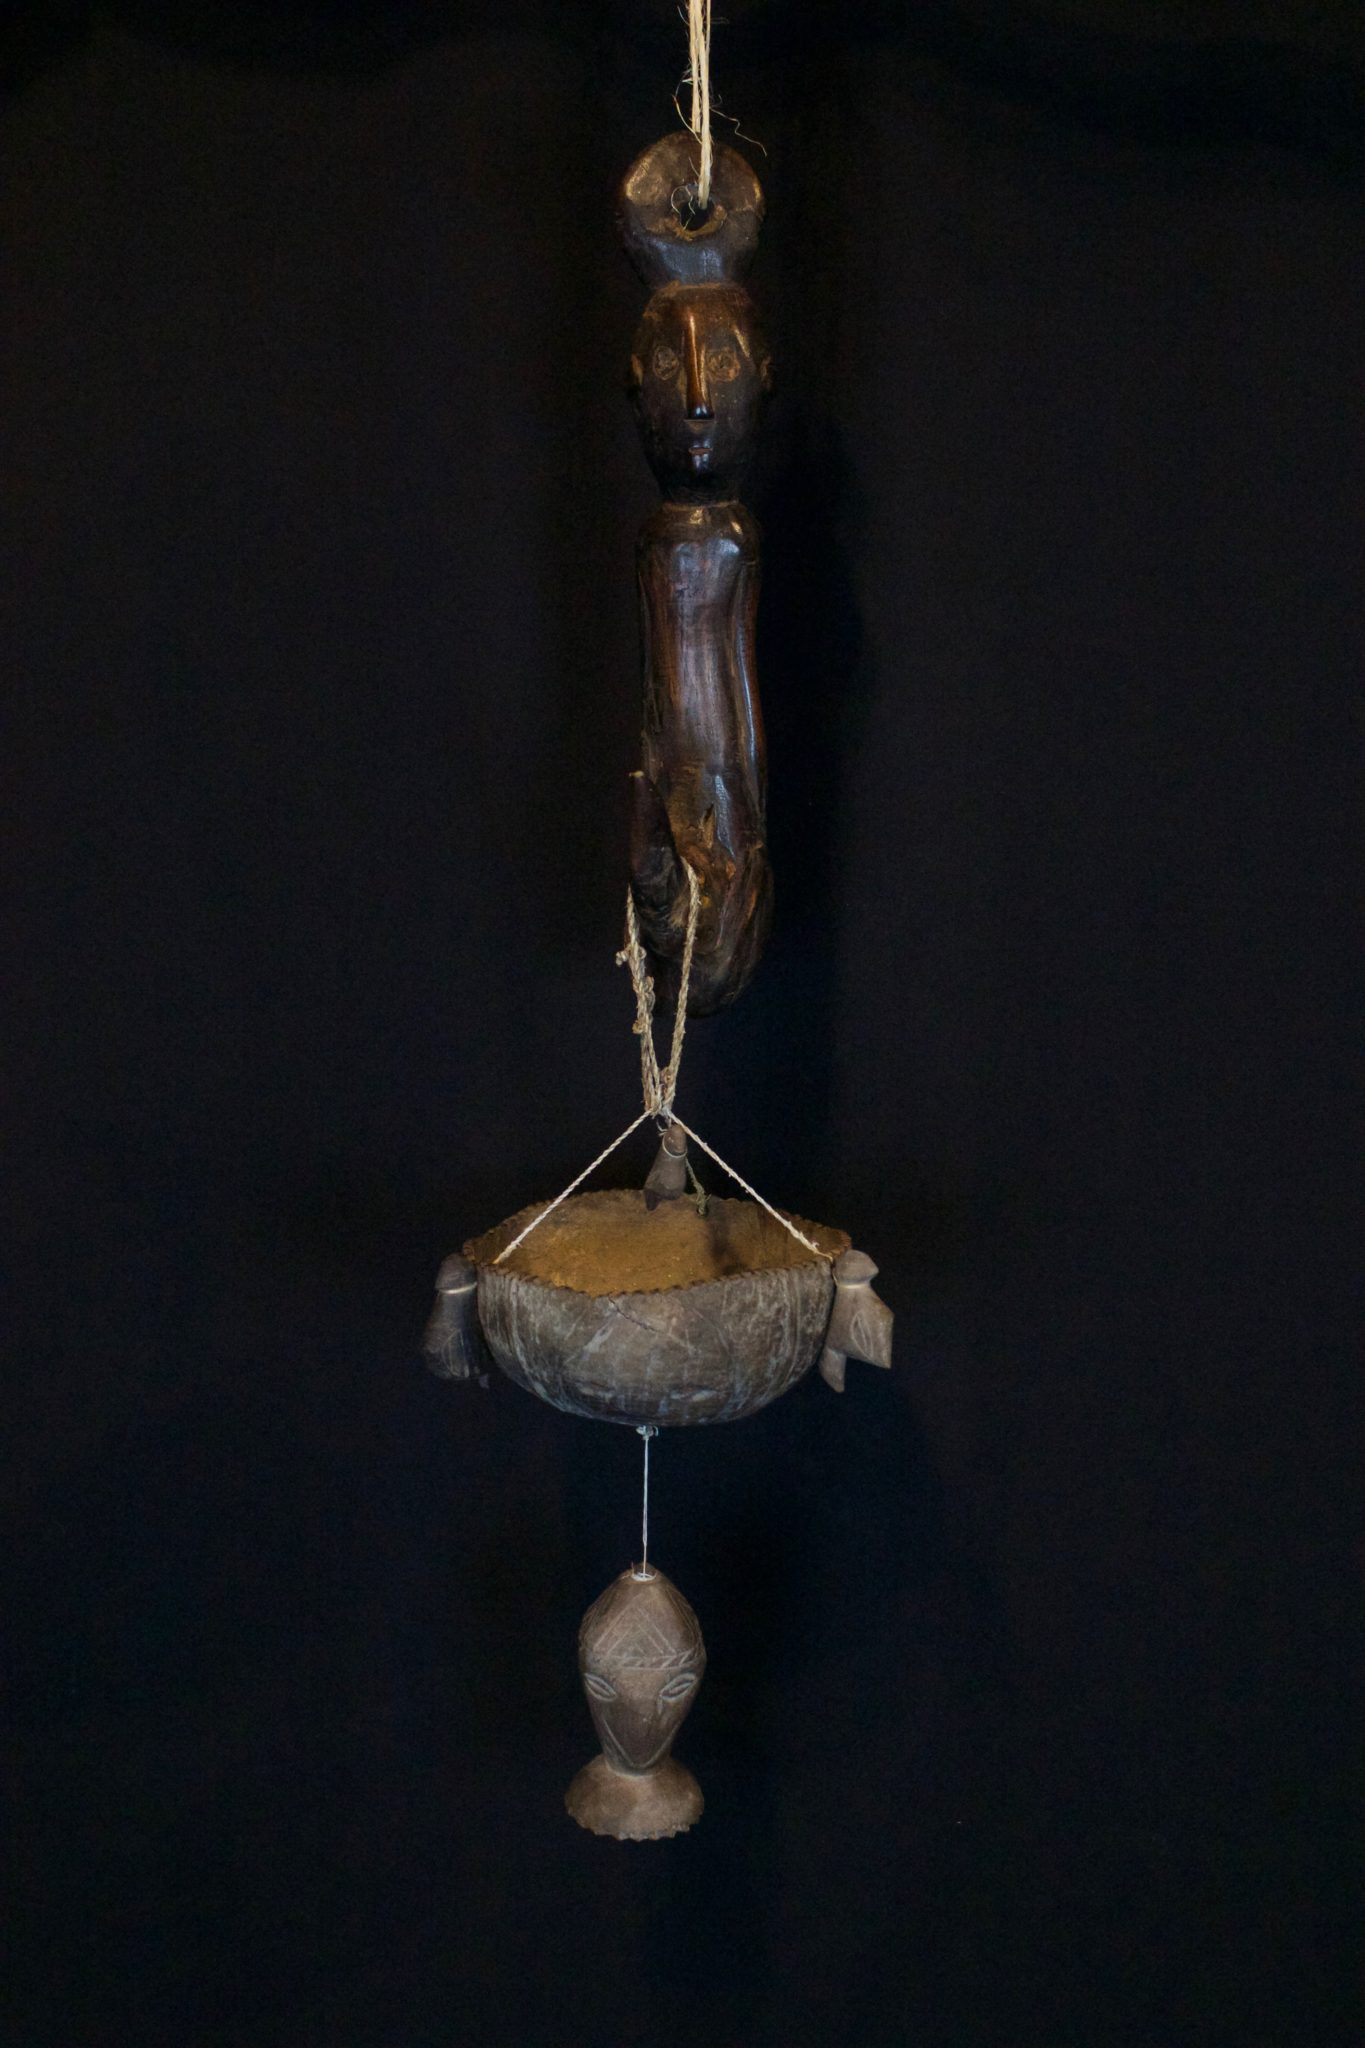 "Hanging Effigy and Herb Bowl - set, East Sumba Island, Indonesia, Soru village, Early 20th c, Wood, coconut, fiber string. The effigy hanger gives great healing power to the herbs placed in the coconut bowl suspended below it. The bowl has three bird figure and three carved faces with an amulet head hanging below it. 30"" x 6"" x 6"", $1200."